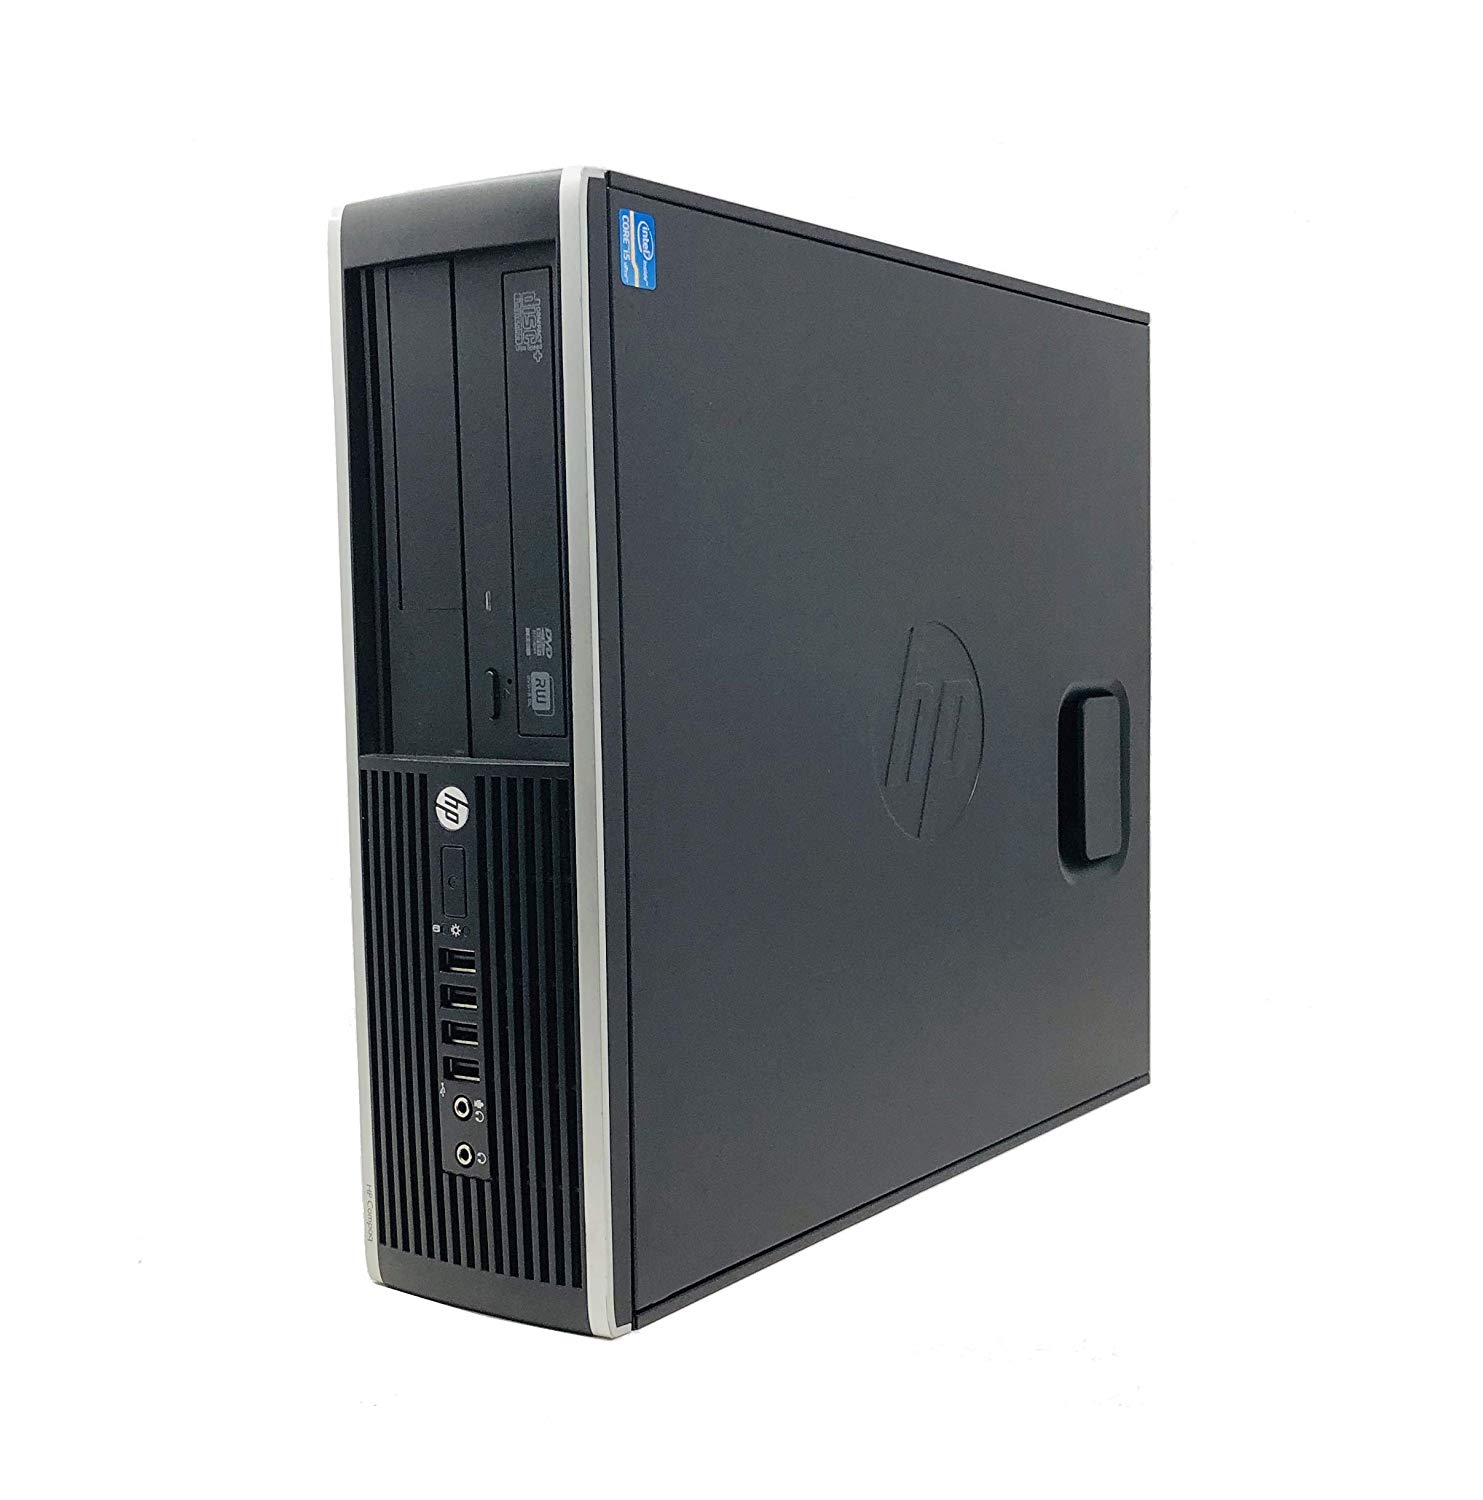 Hp Elite 8200 - Ordenador De Sobremesa (Intel  I5-2400, Sin Lector 8GB De RAM, Disco SSD De 480GB , Windows 10 PRO ) - Negro (Reacondicionado)